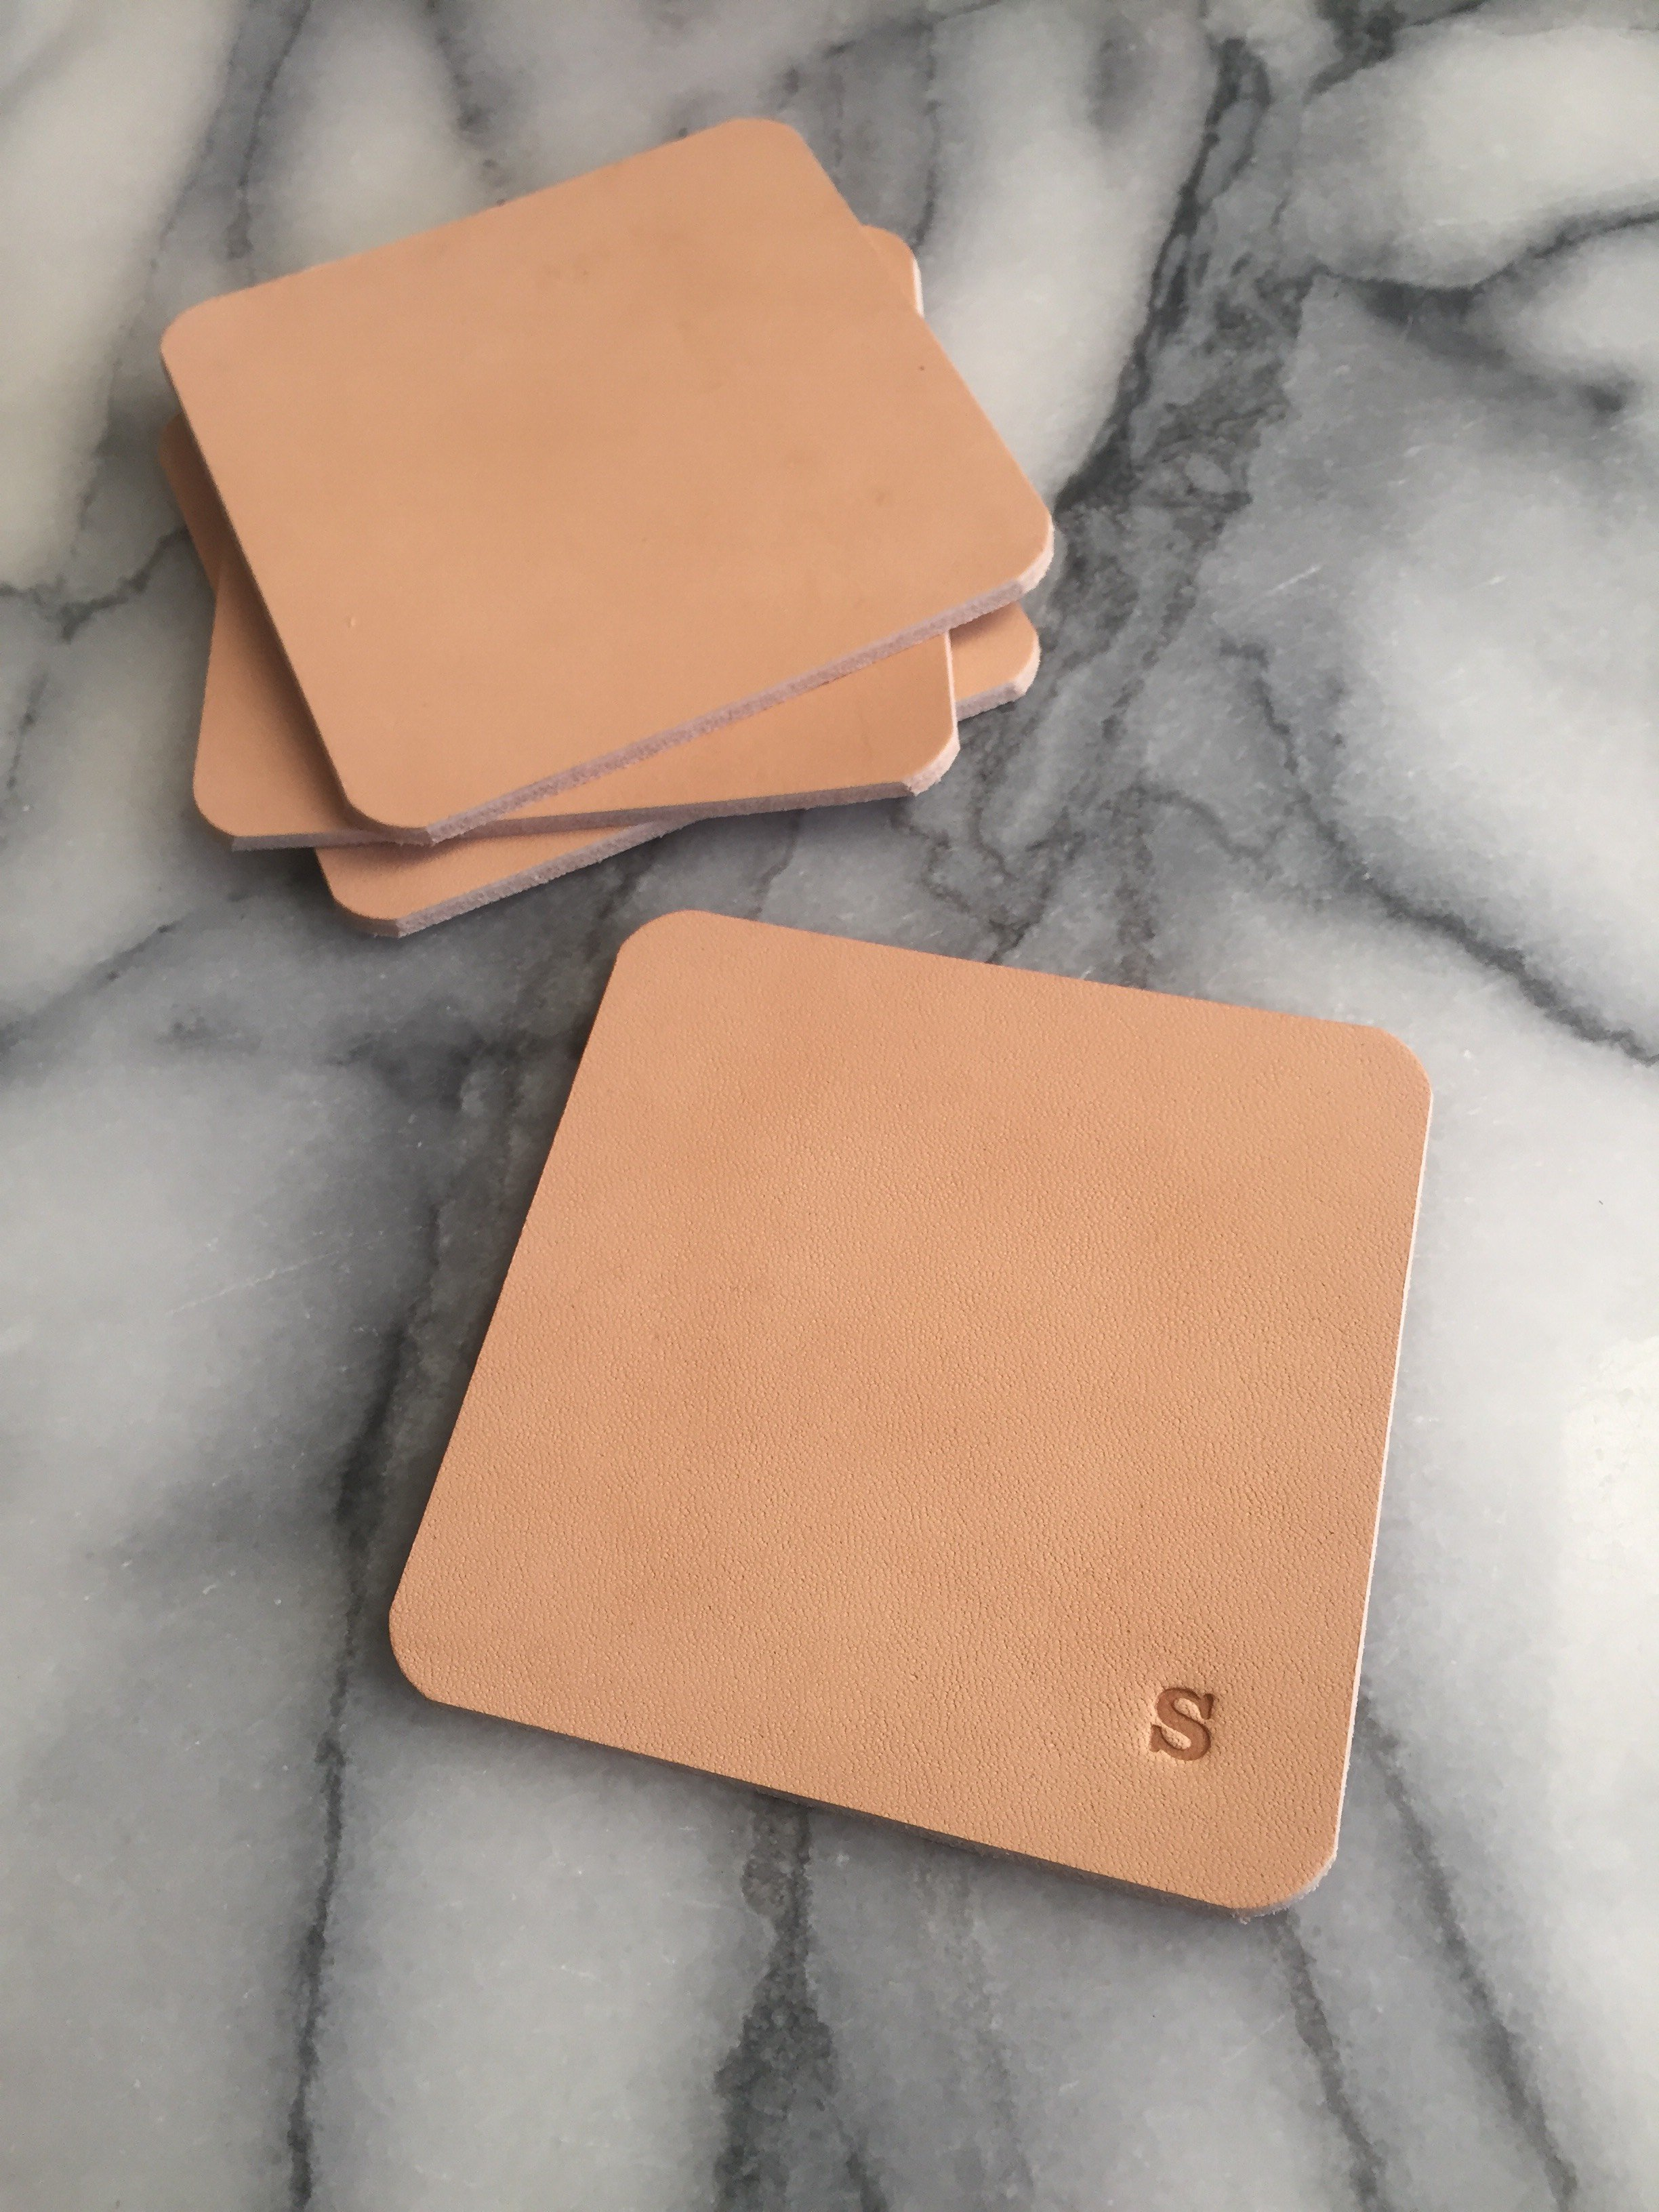 Leather Coasters - glasunderlägg i läder